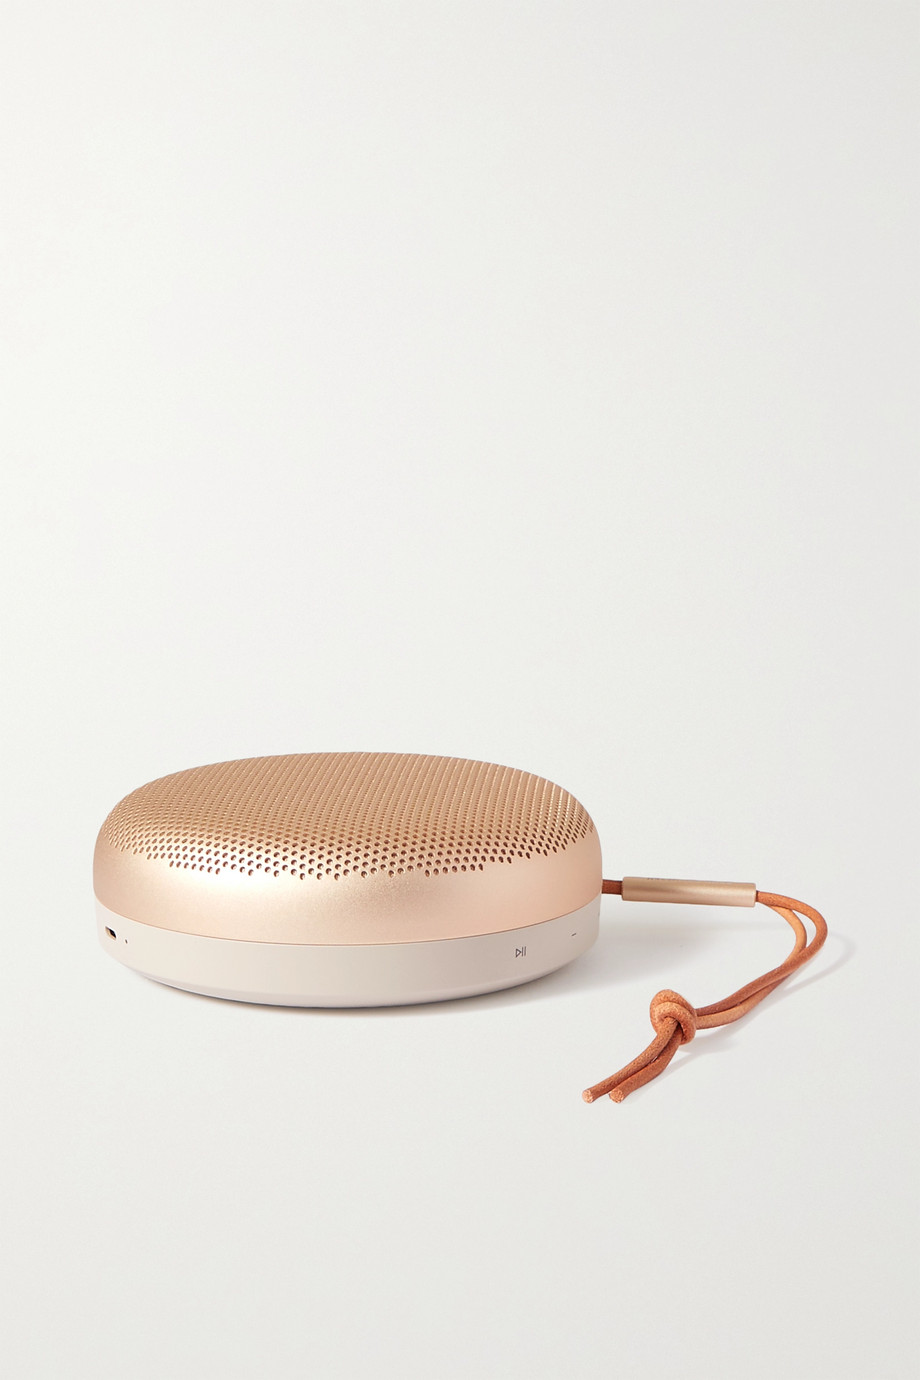 Bang & Olufsen BeoSound A1 2nd Gen portable wireless speaker